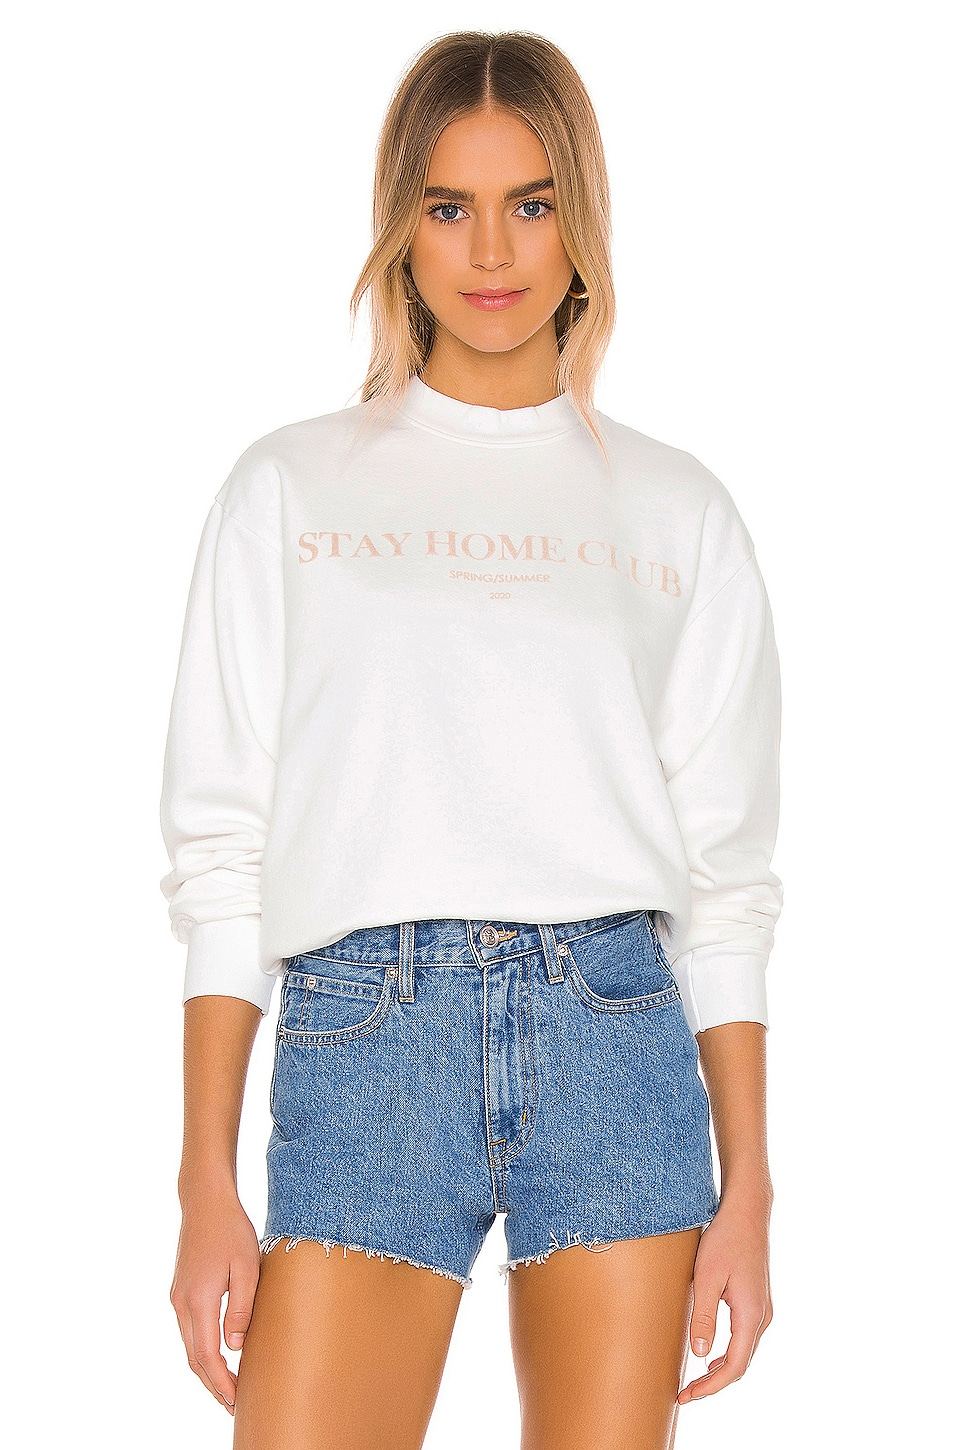 Stay Home Club Sweatshirt             GRLFRND                                                                                                       CA$ 193.79 2